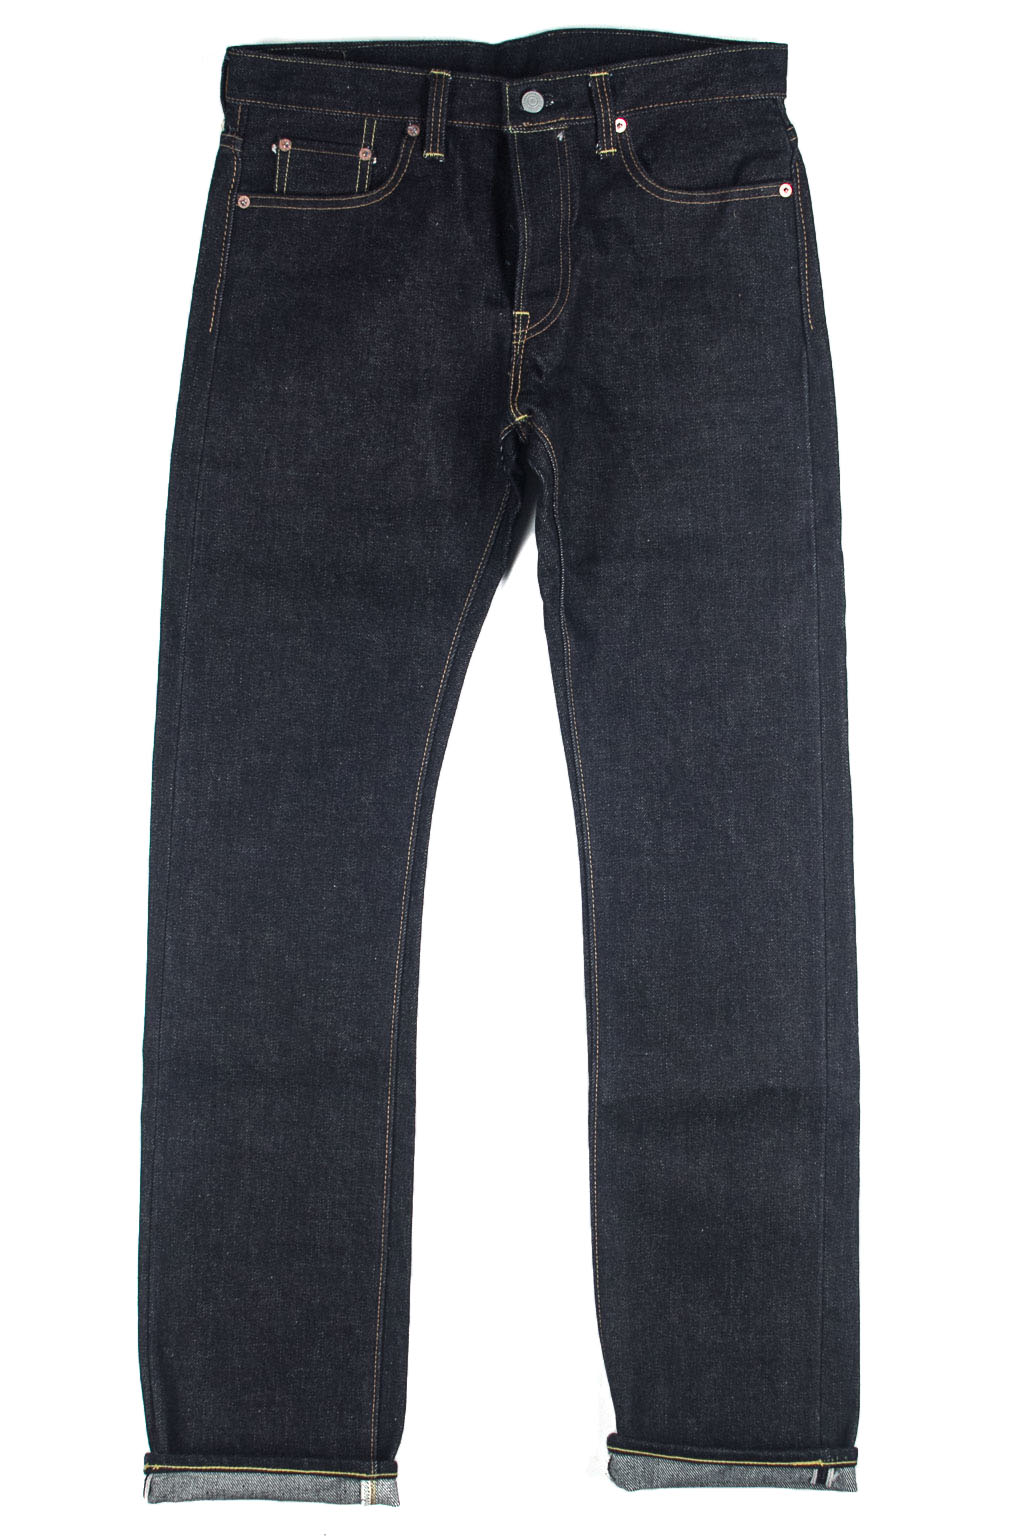 1109-21oz Extra Heavy Denim